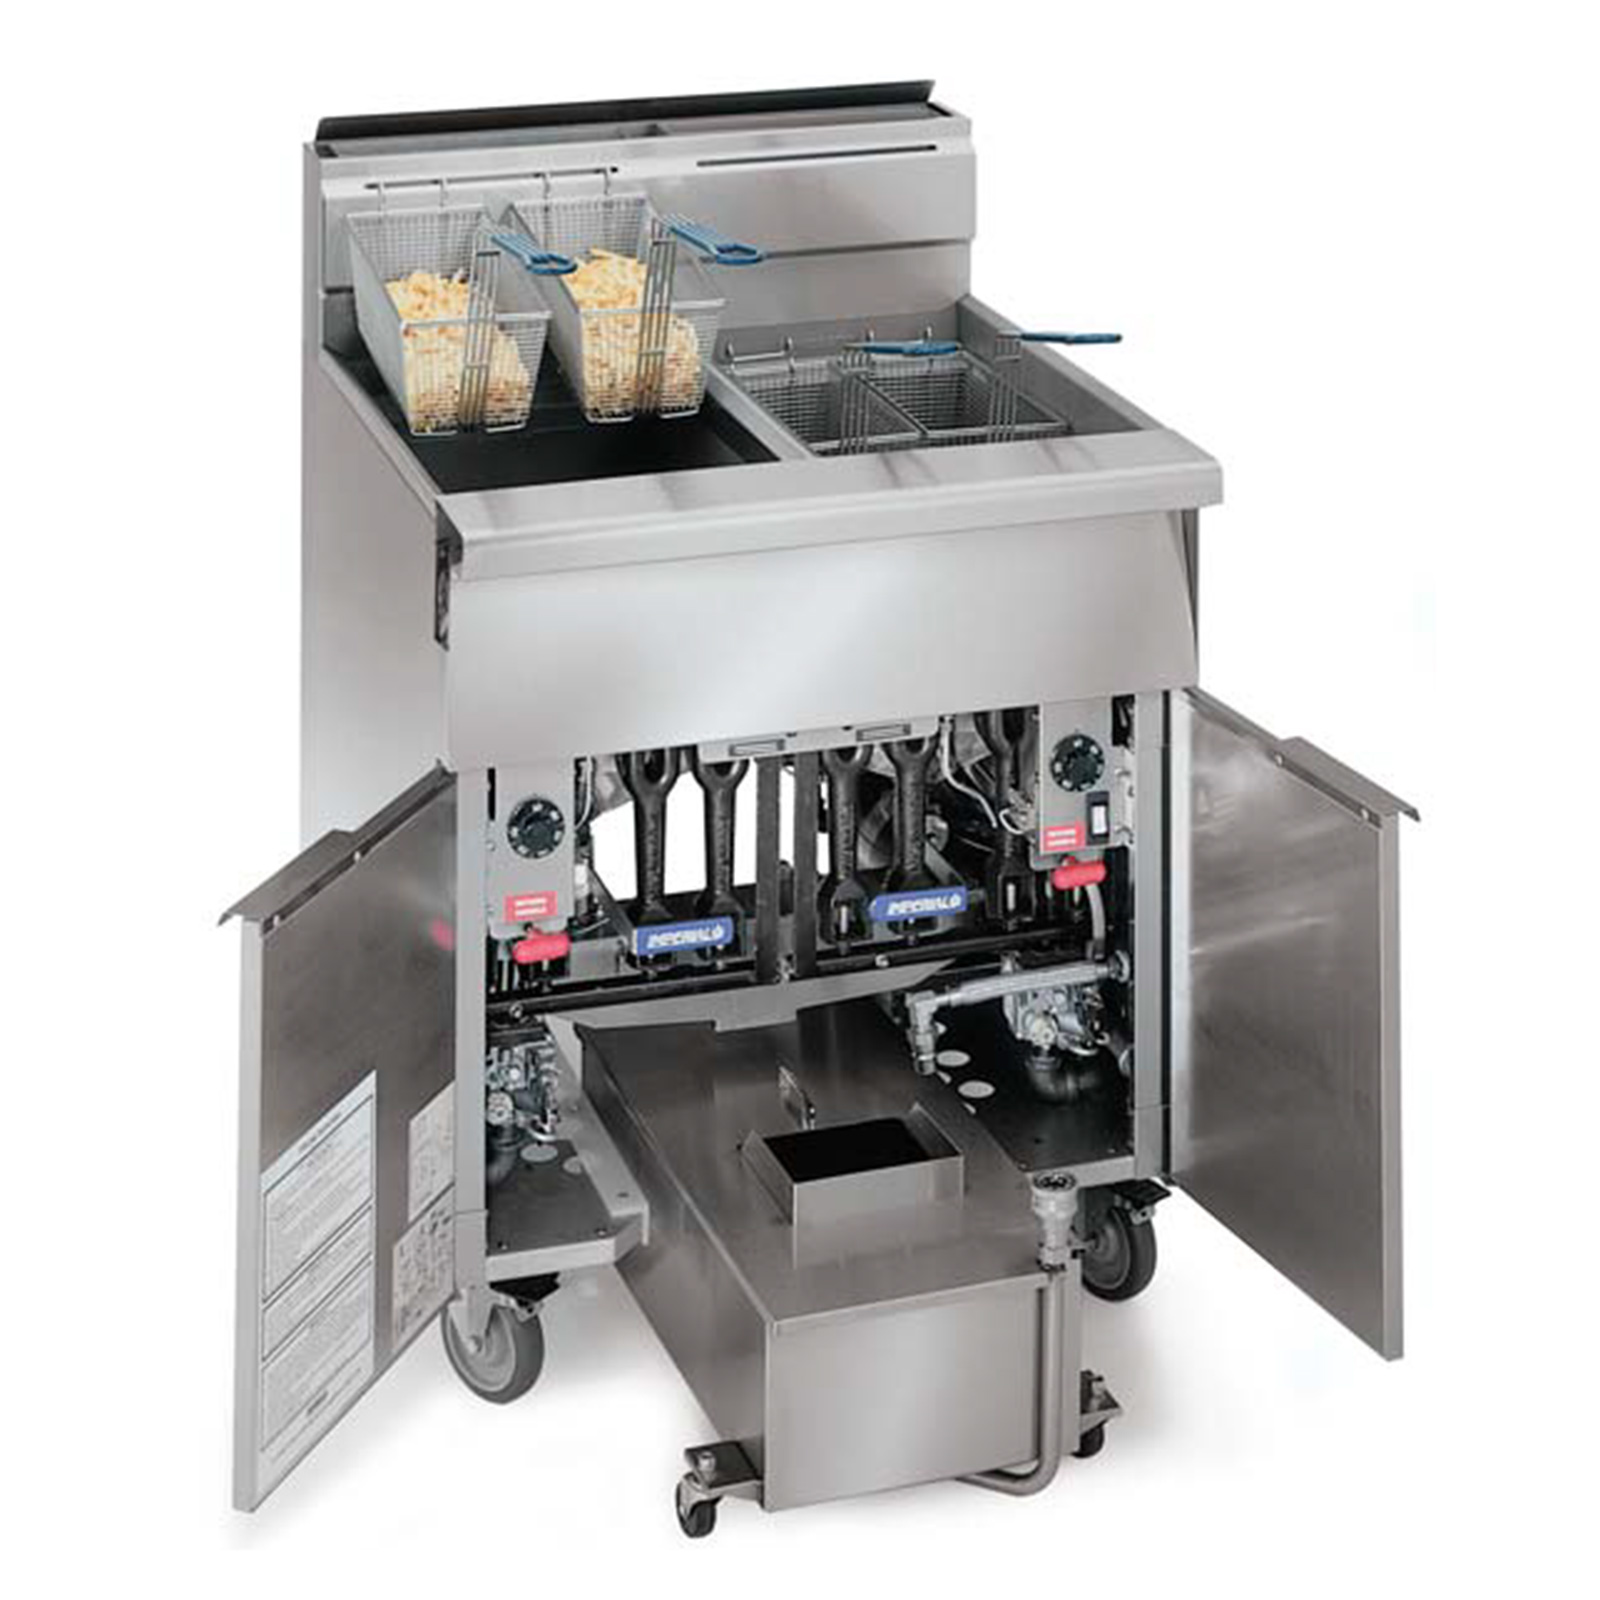 Imperial IHRSP475 fryer, gas, multiple battery